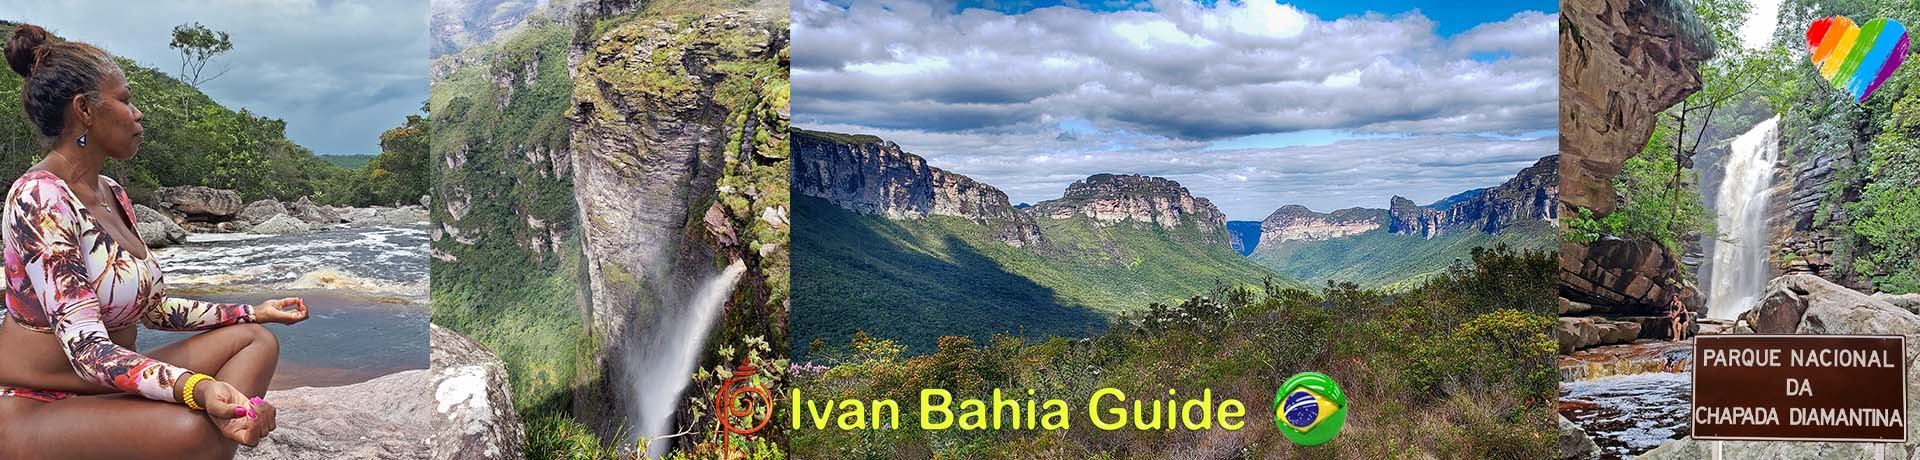 Discover CHapada Diamantina National Park in Bahia (also known as the Brazilian Grand Canyon) with Ivan Bahia tour guide / travel agency - Photography by Ivan Bahia Guide, traveling in Brazil, reisgids in Brazilie, #FernandoBingre,#SalvadorFoto,#SalvadorBahiaBrazil,SalvadorBahiaTourism,#IvanBahiaGuide,#IvanSalvadorBahia,#SalvadorBahiaTravel,#ToursByLocals